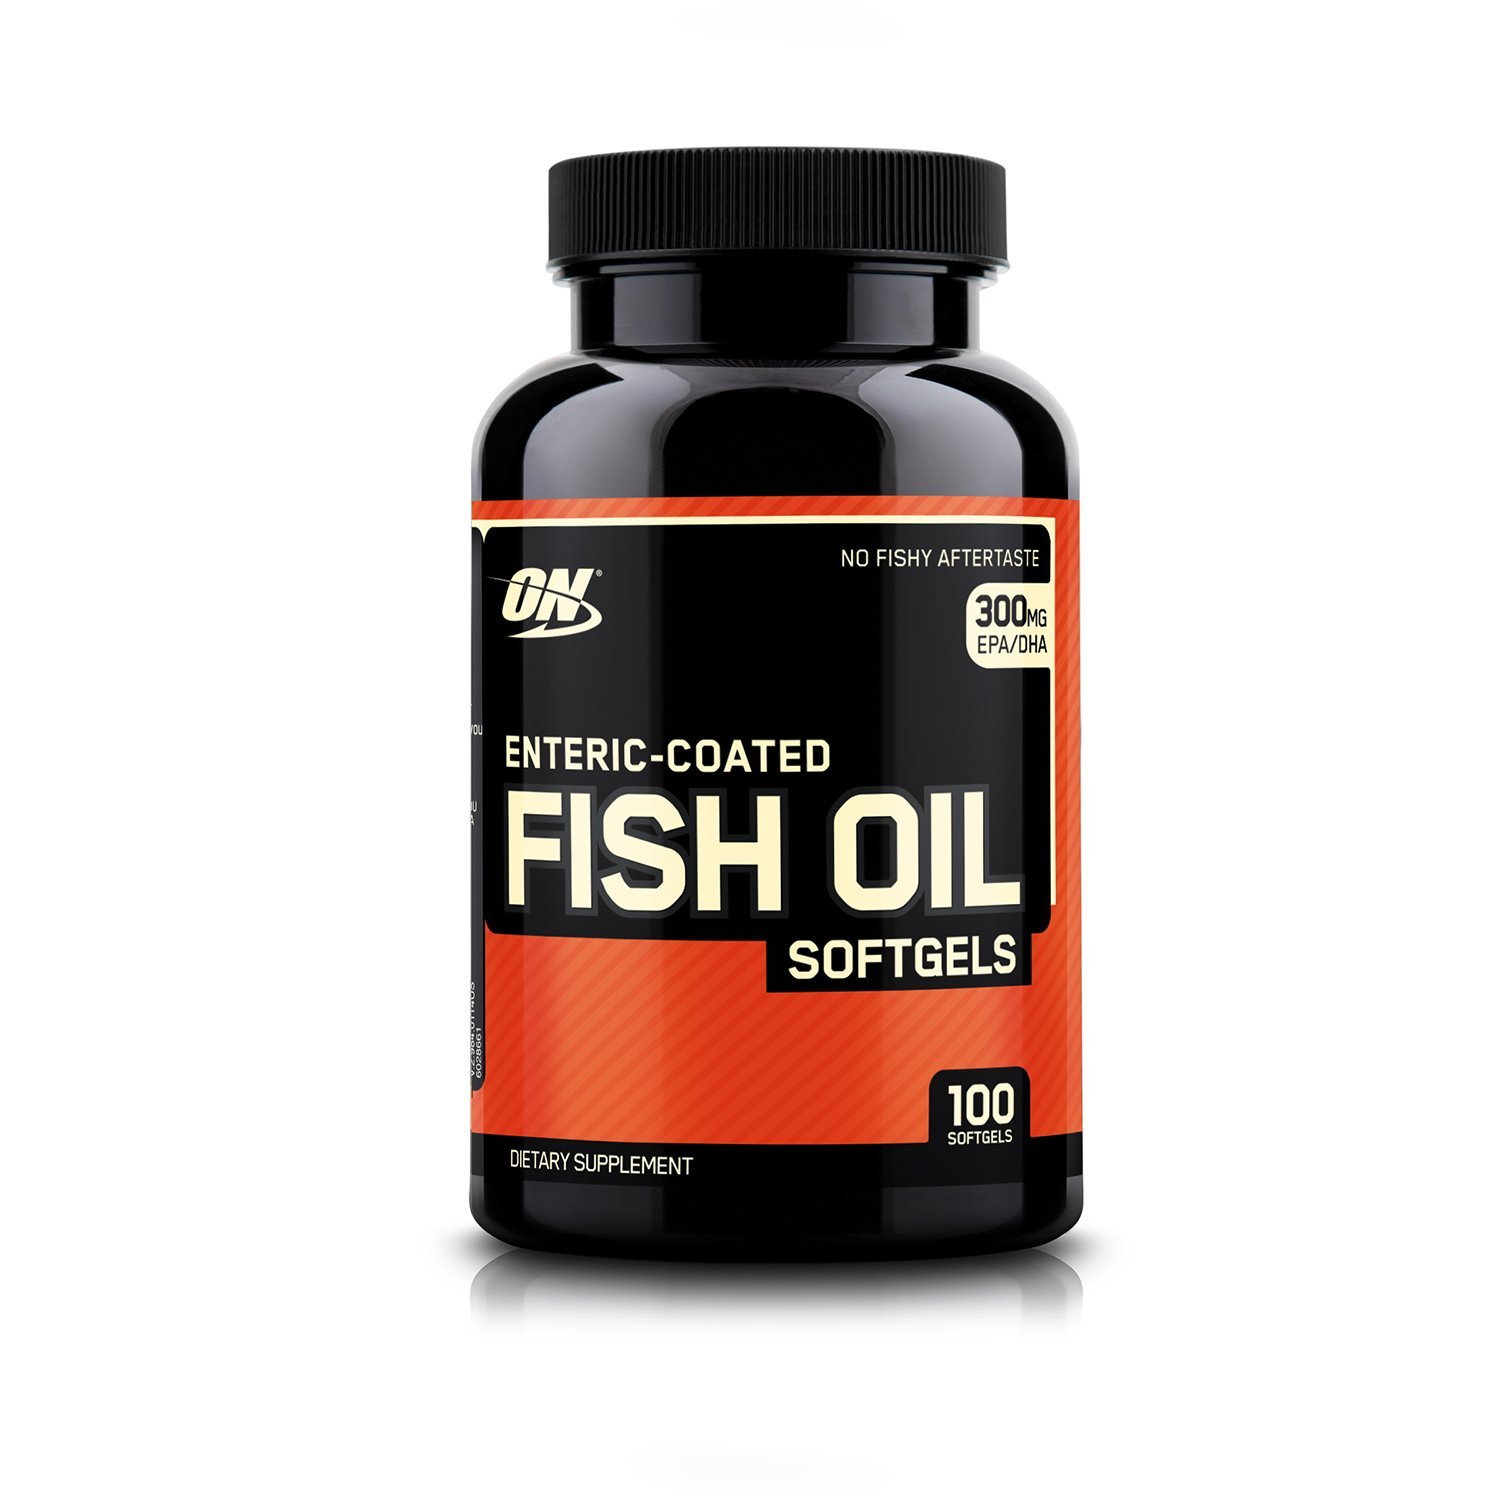 Compare buy on enteric coated fish oil 100 softgels for Enteric coated fish oil